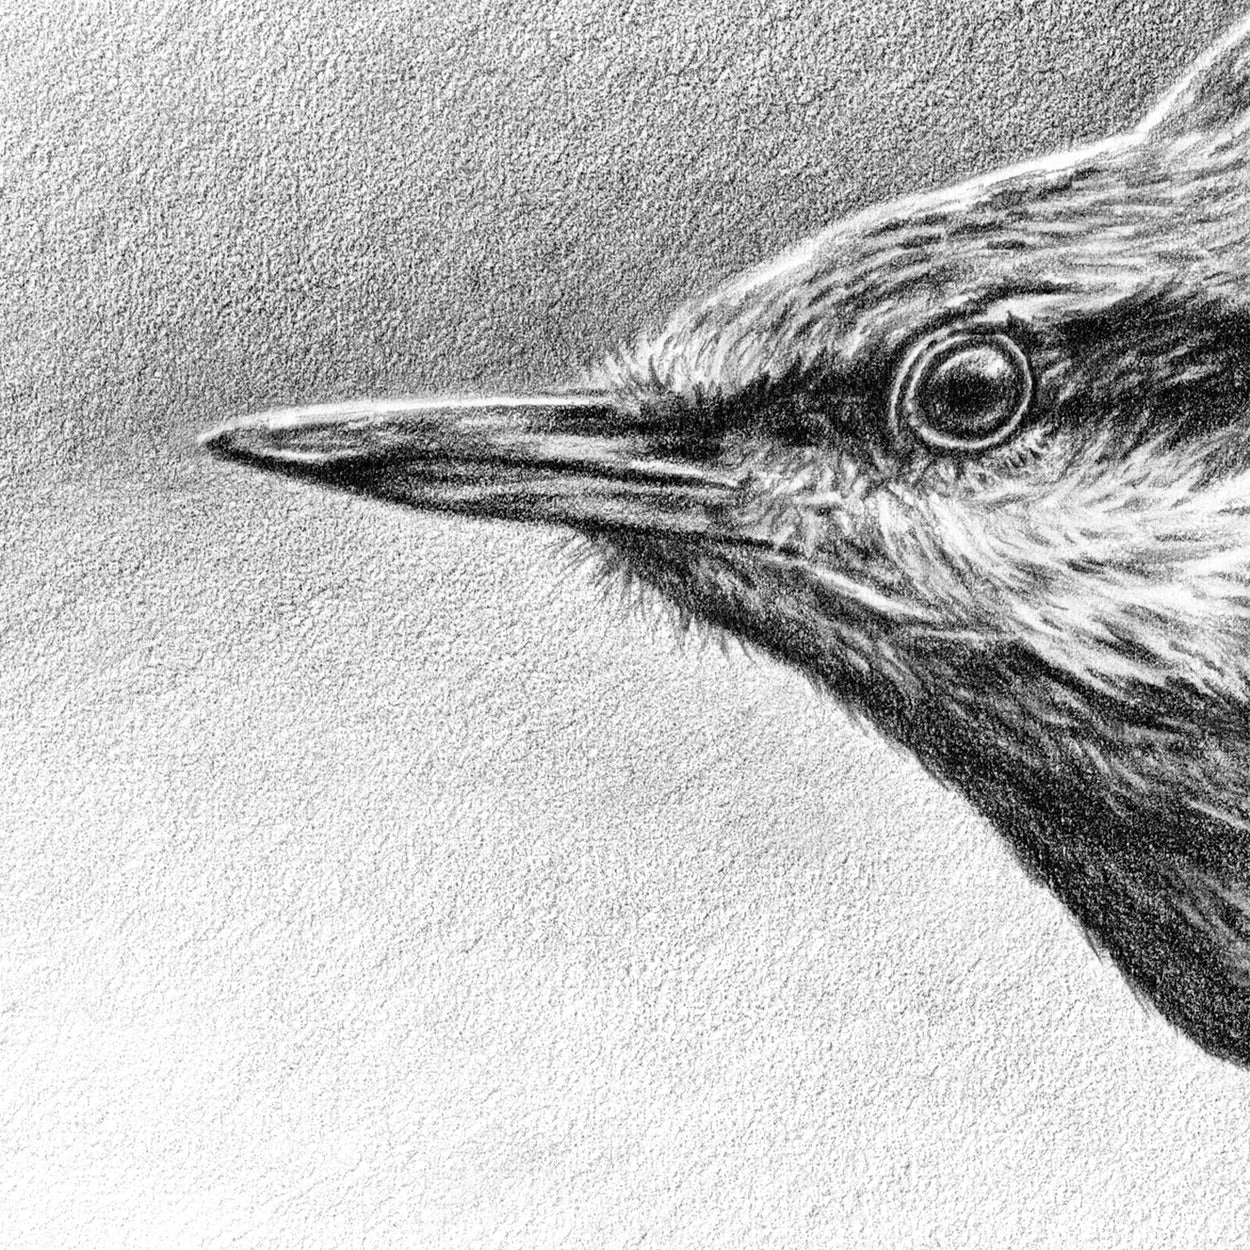 Nuthatch Drawing Close-up 1 - The Thriving Wild